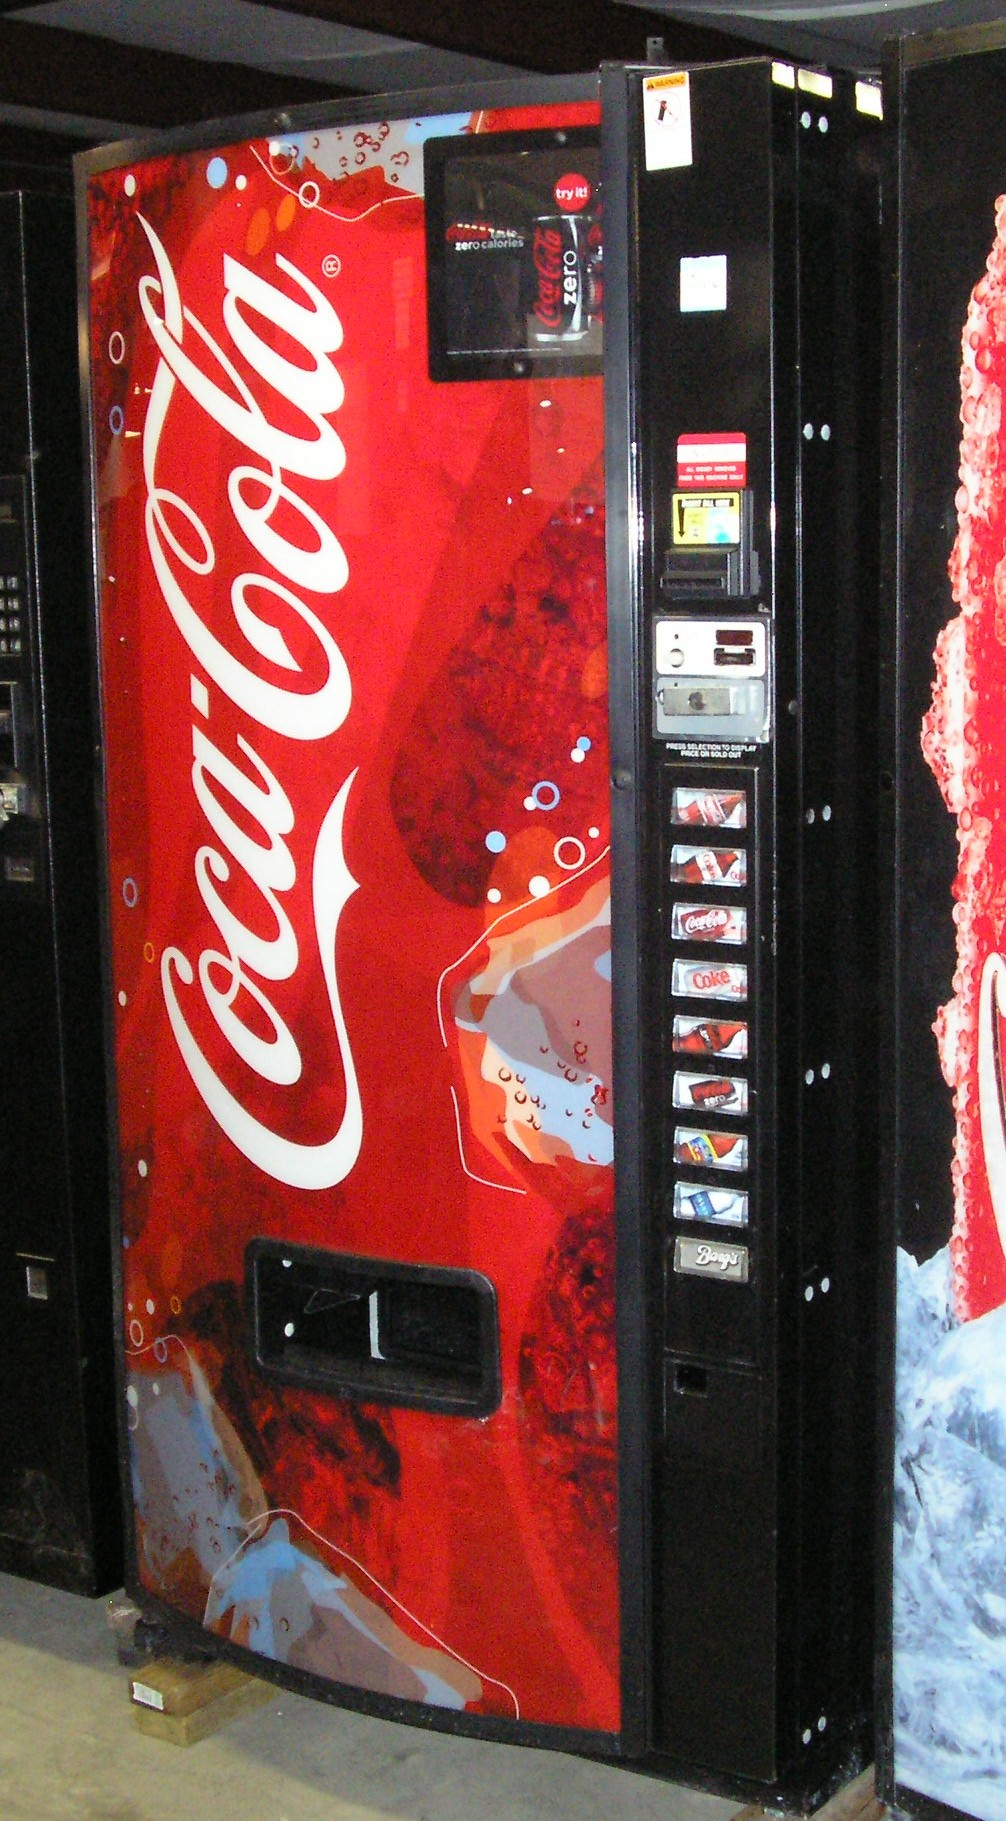 coca colas new vending machine The case study of coca-cola's new vending machine suggests that the company should provide a demand analysis in order to assess price changes and demand for different types of products.